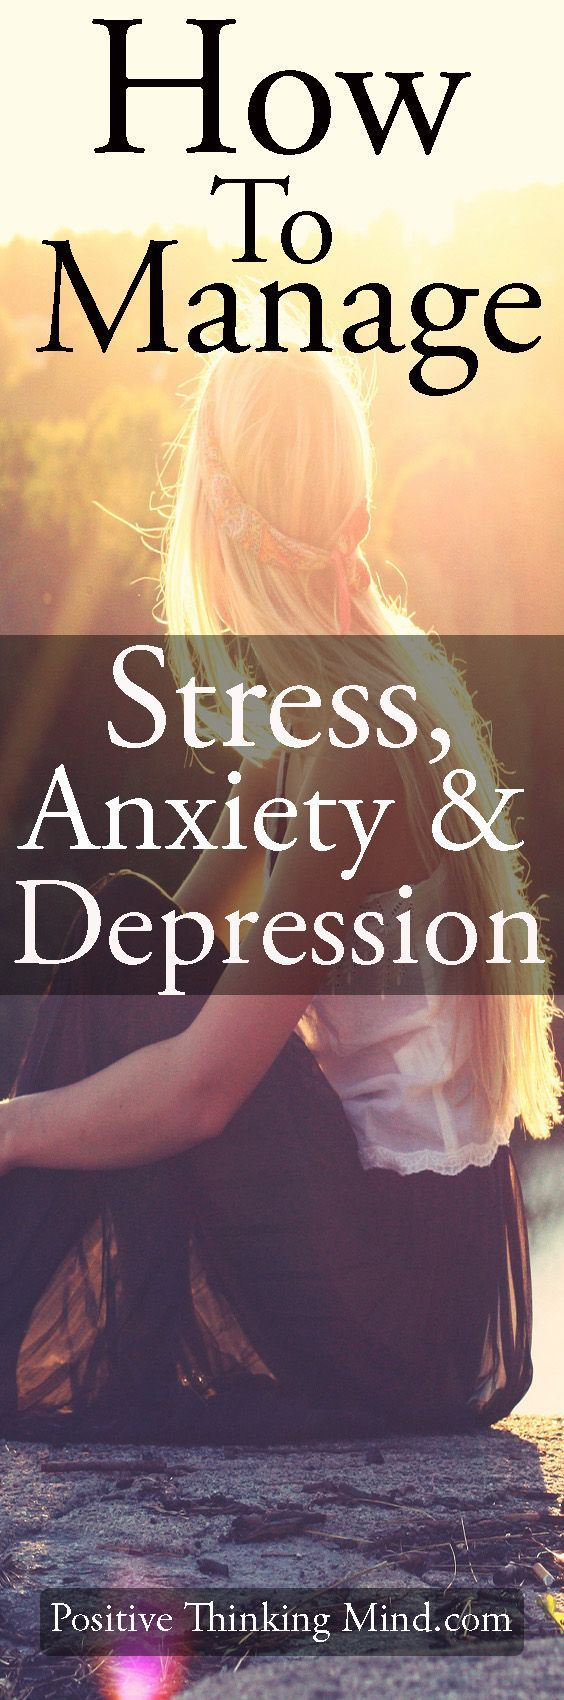 #Anxiety and #Depression usually go hand in hand and people with #socialanxiety disorder, #generalizedanxiety disorder spend most of their time in a highly agitated state